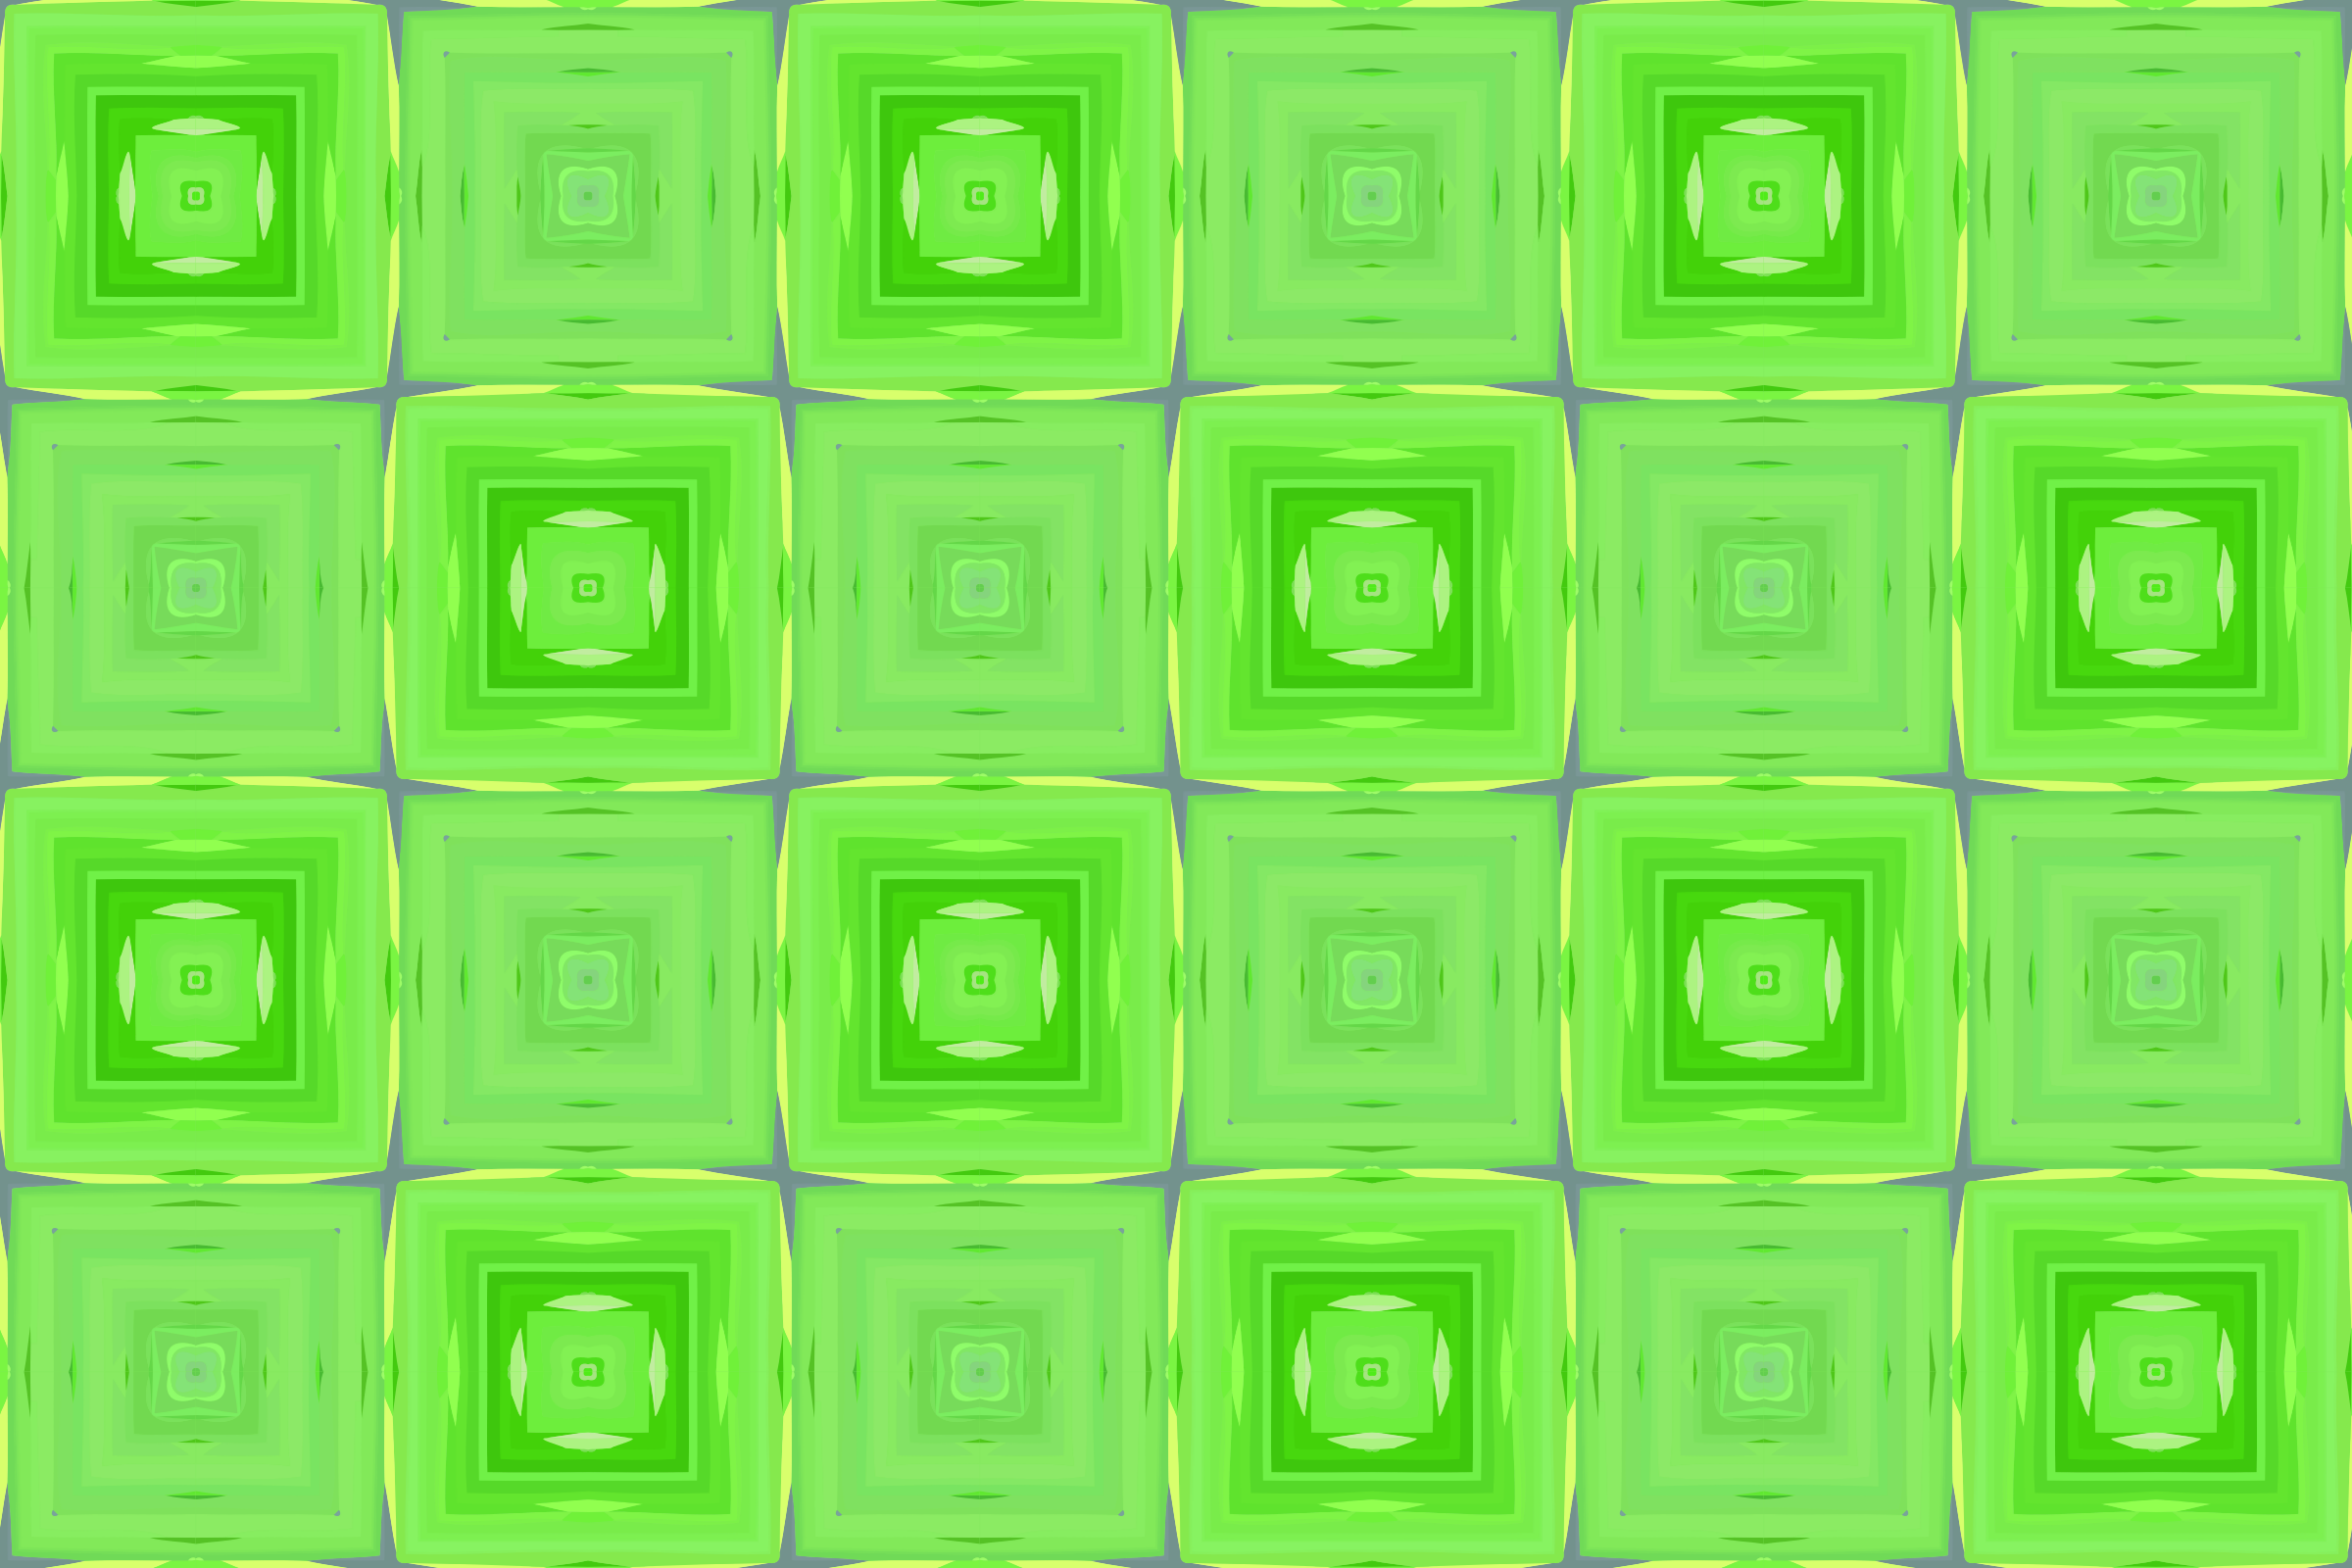 Background pattern 186 (colour 2) by Firkin